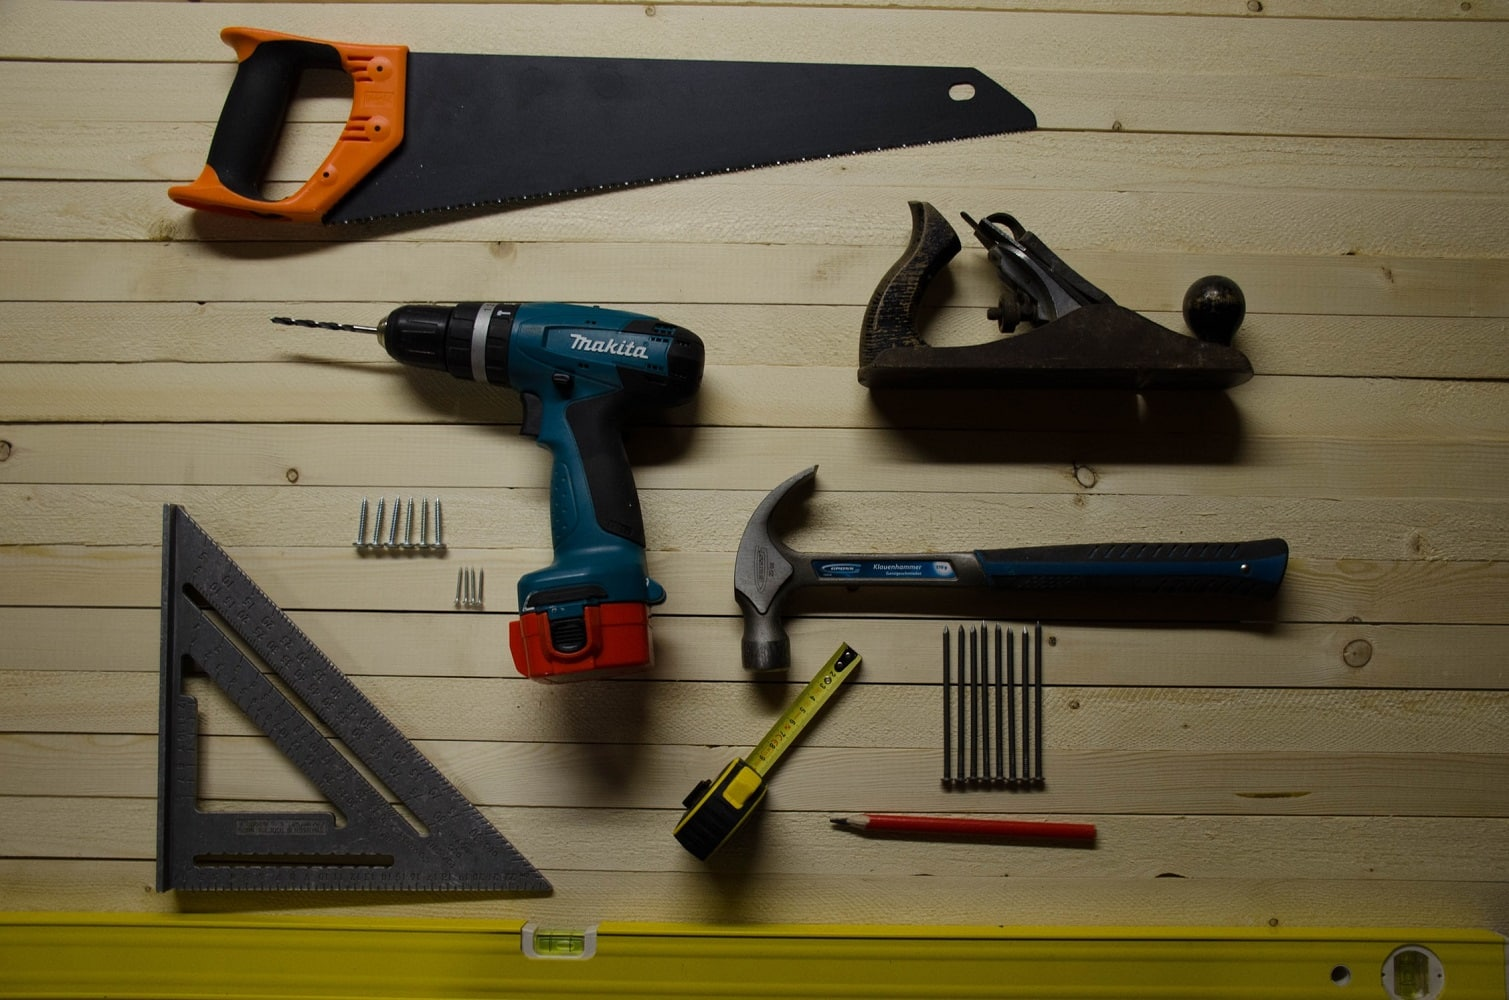 Simply the best cordless power tool brands 2